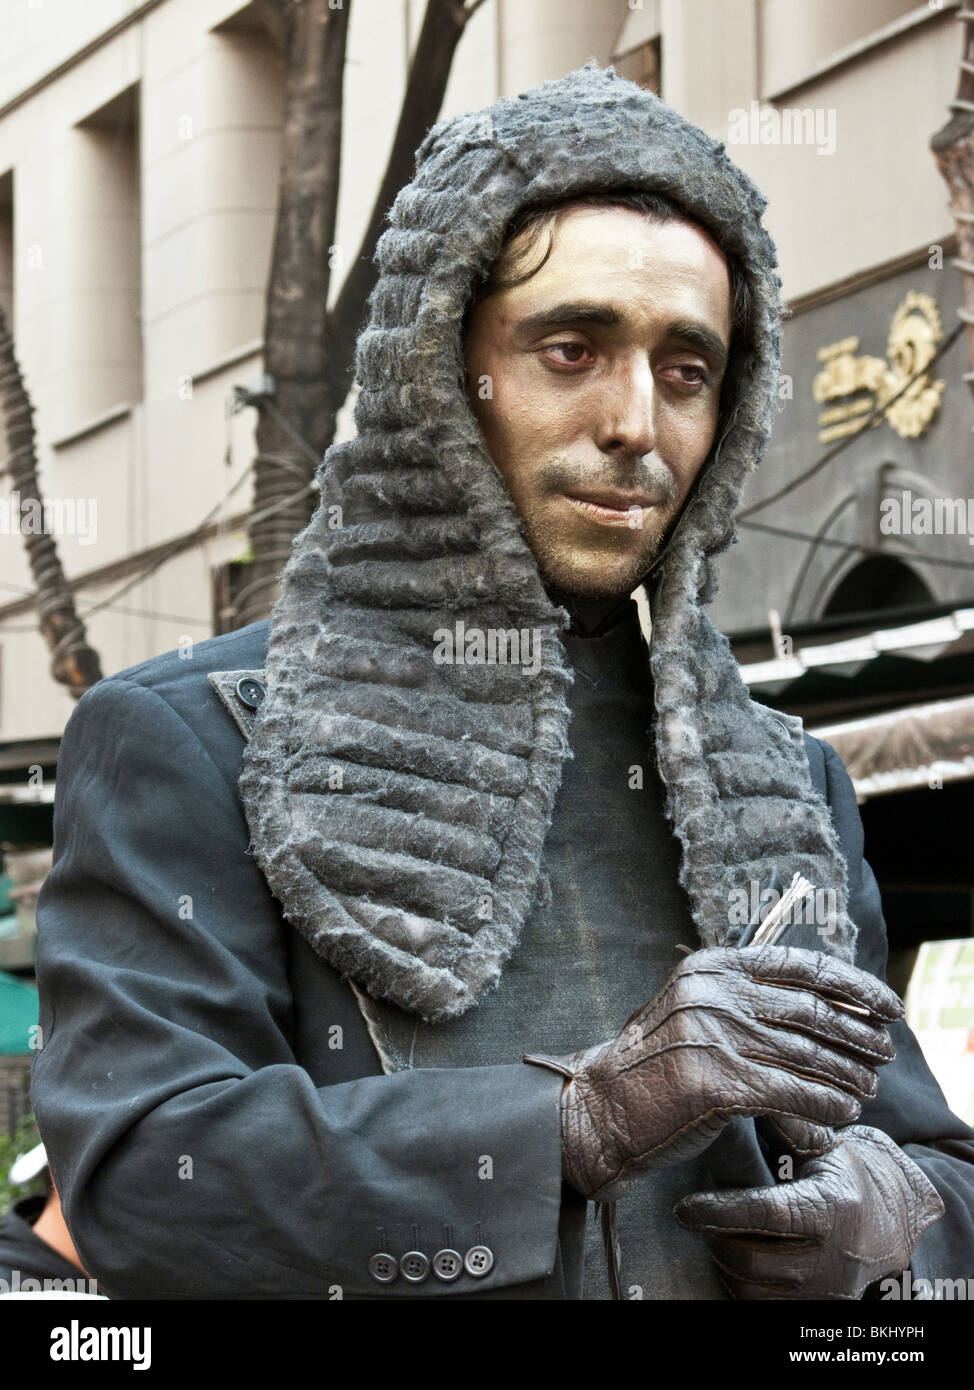 bewigged poet judge street mime hands out poetic justice in historic center of Mexico City Stock Photo